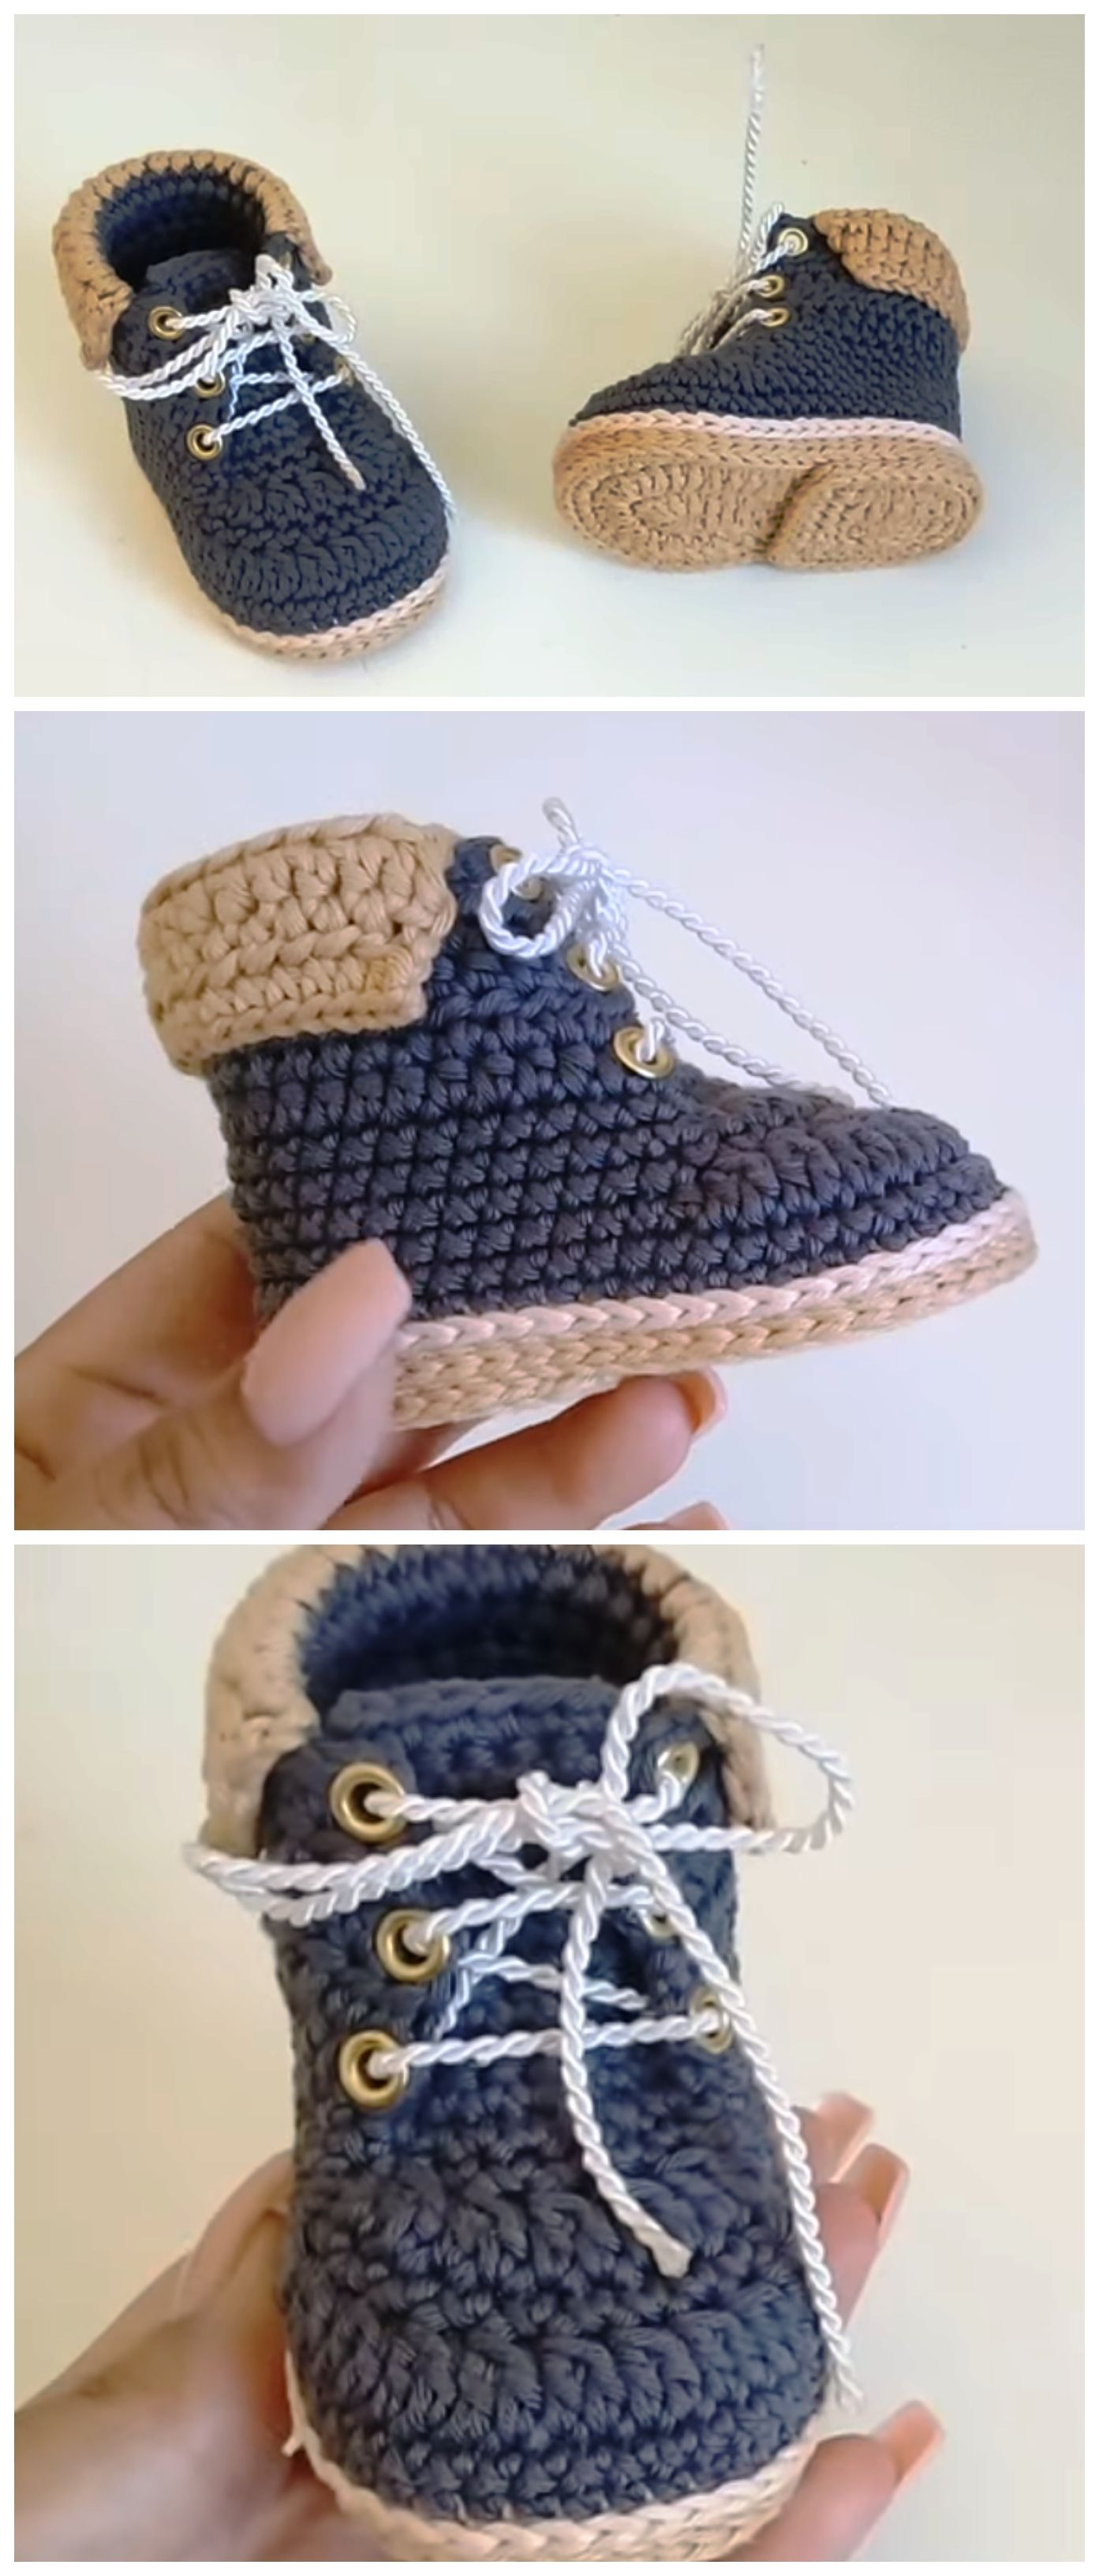 Crochet Baby Boots From 0 To 3 Months #spanishthings